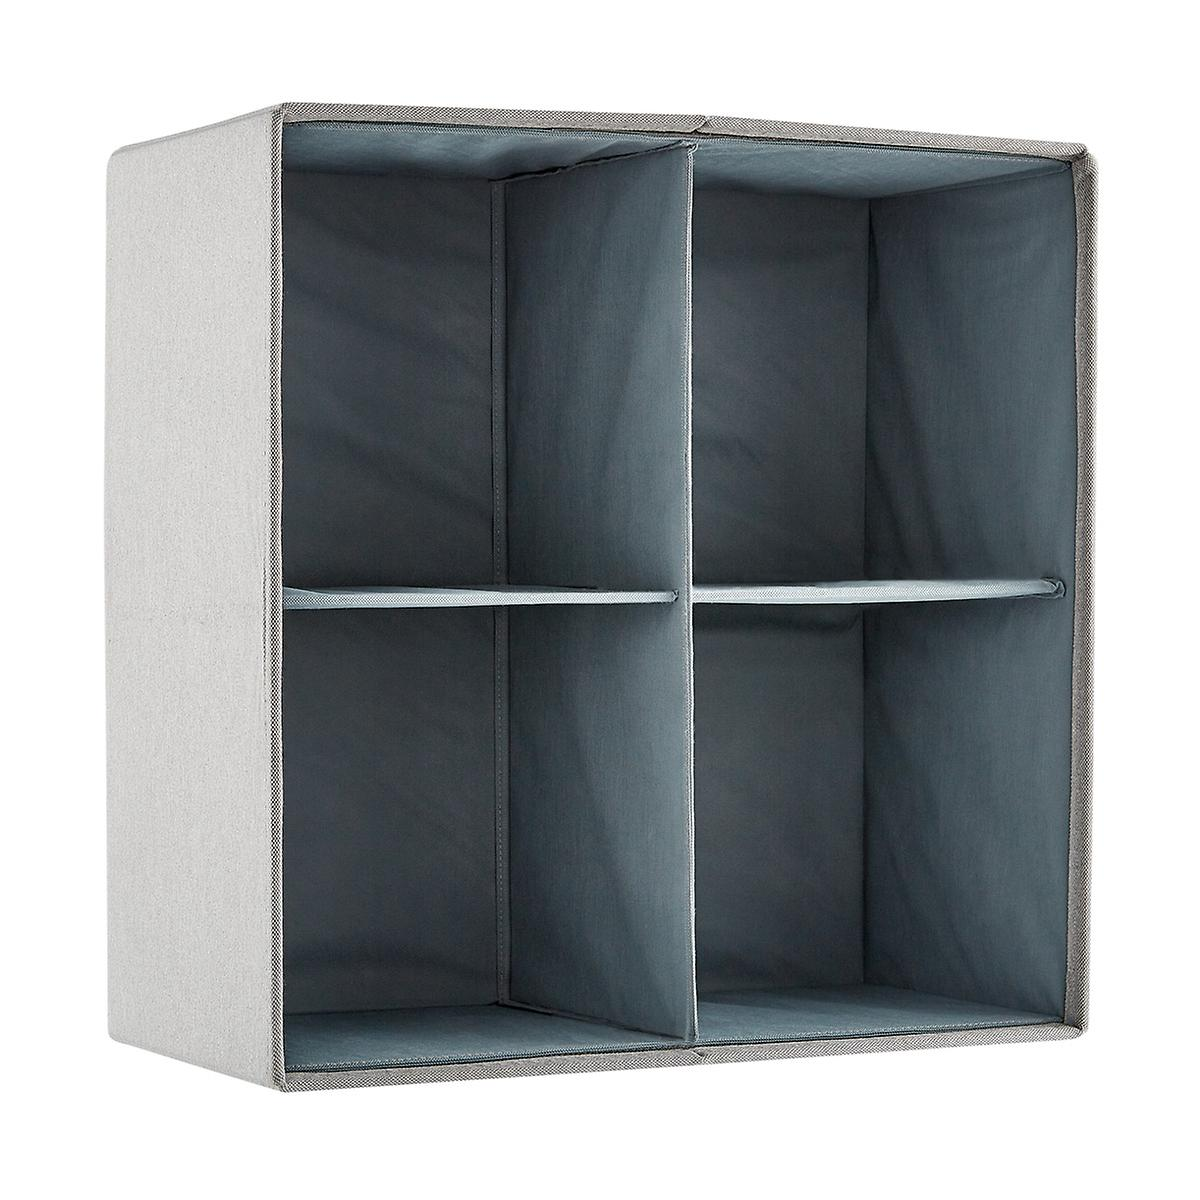 Poppin 2x2 Fabric Storage Cubby